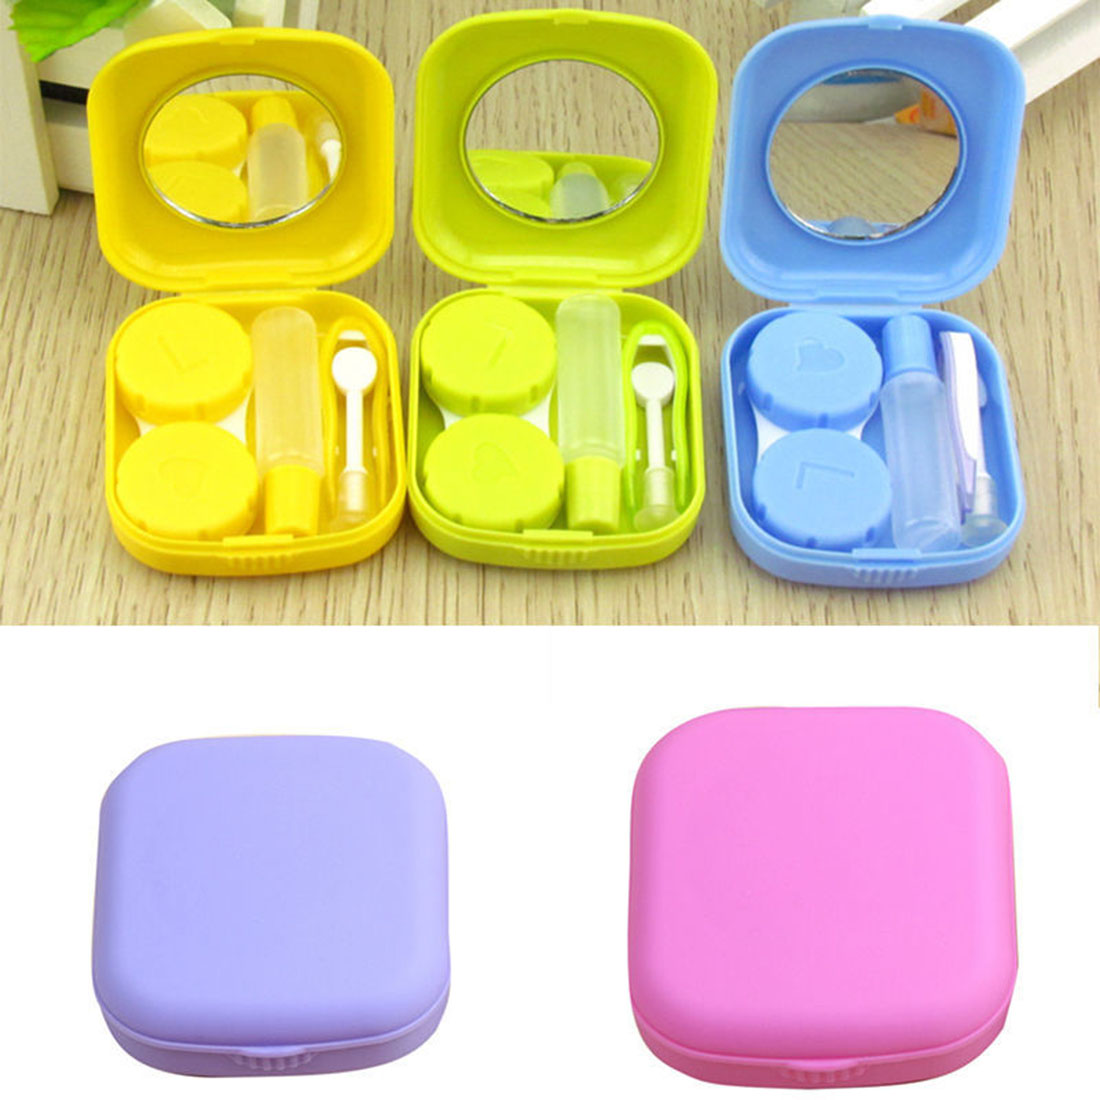 Cute Pocket 5 Colors Mini Square Contact Lens Case Box Travel Kit Easy Carry Mirror Container Eyewear Accessories